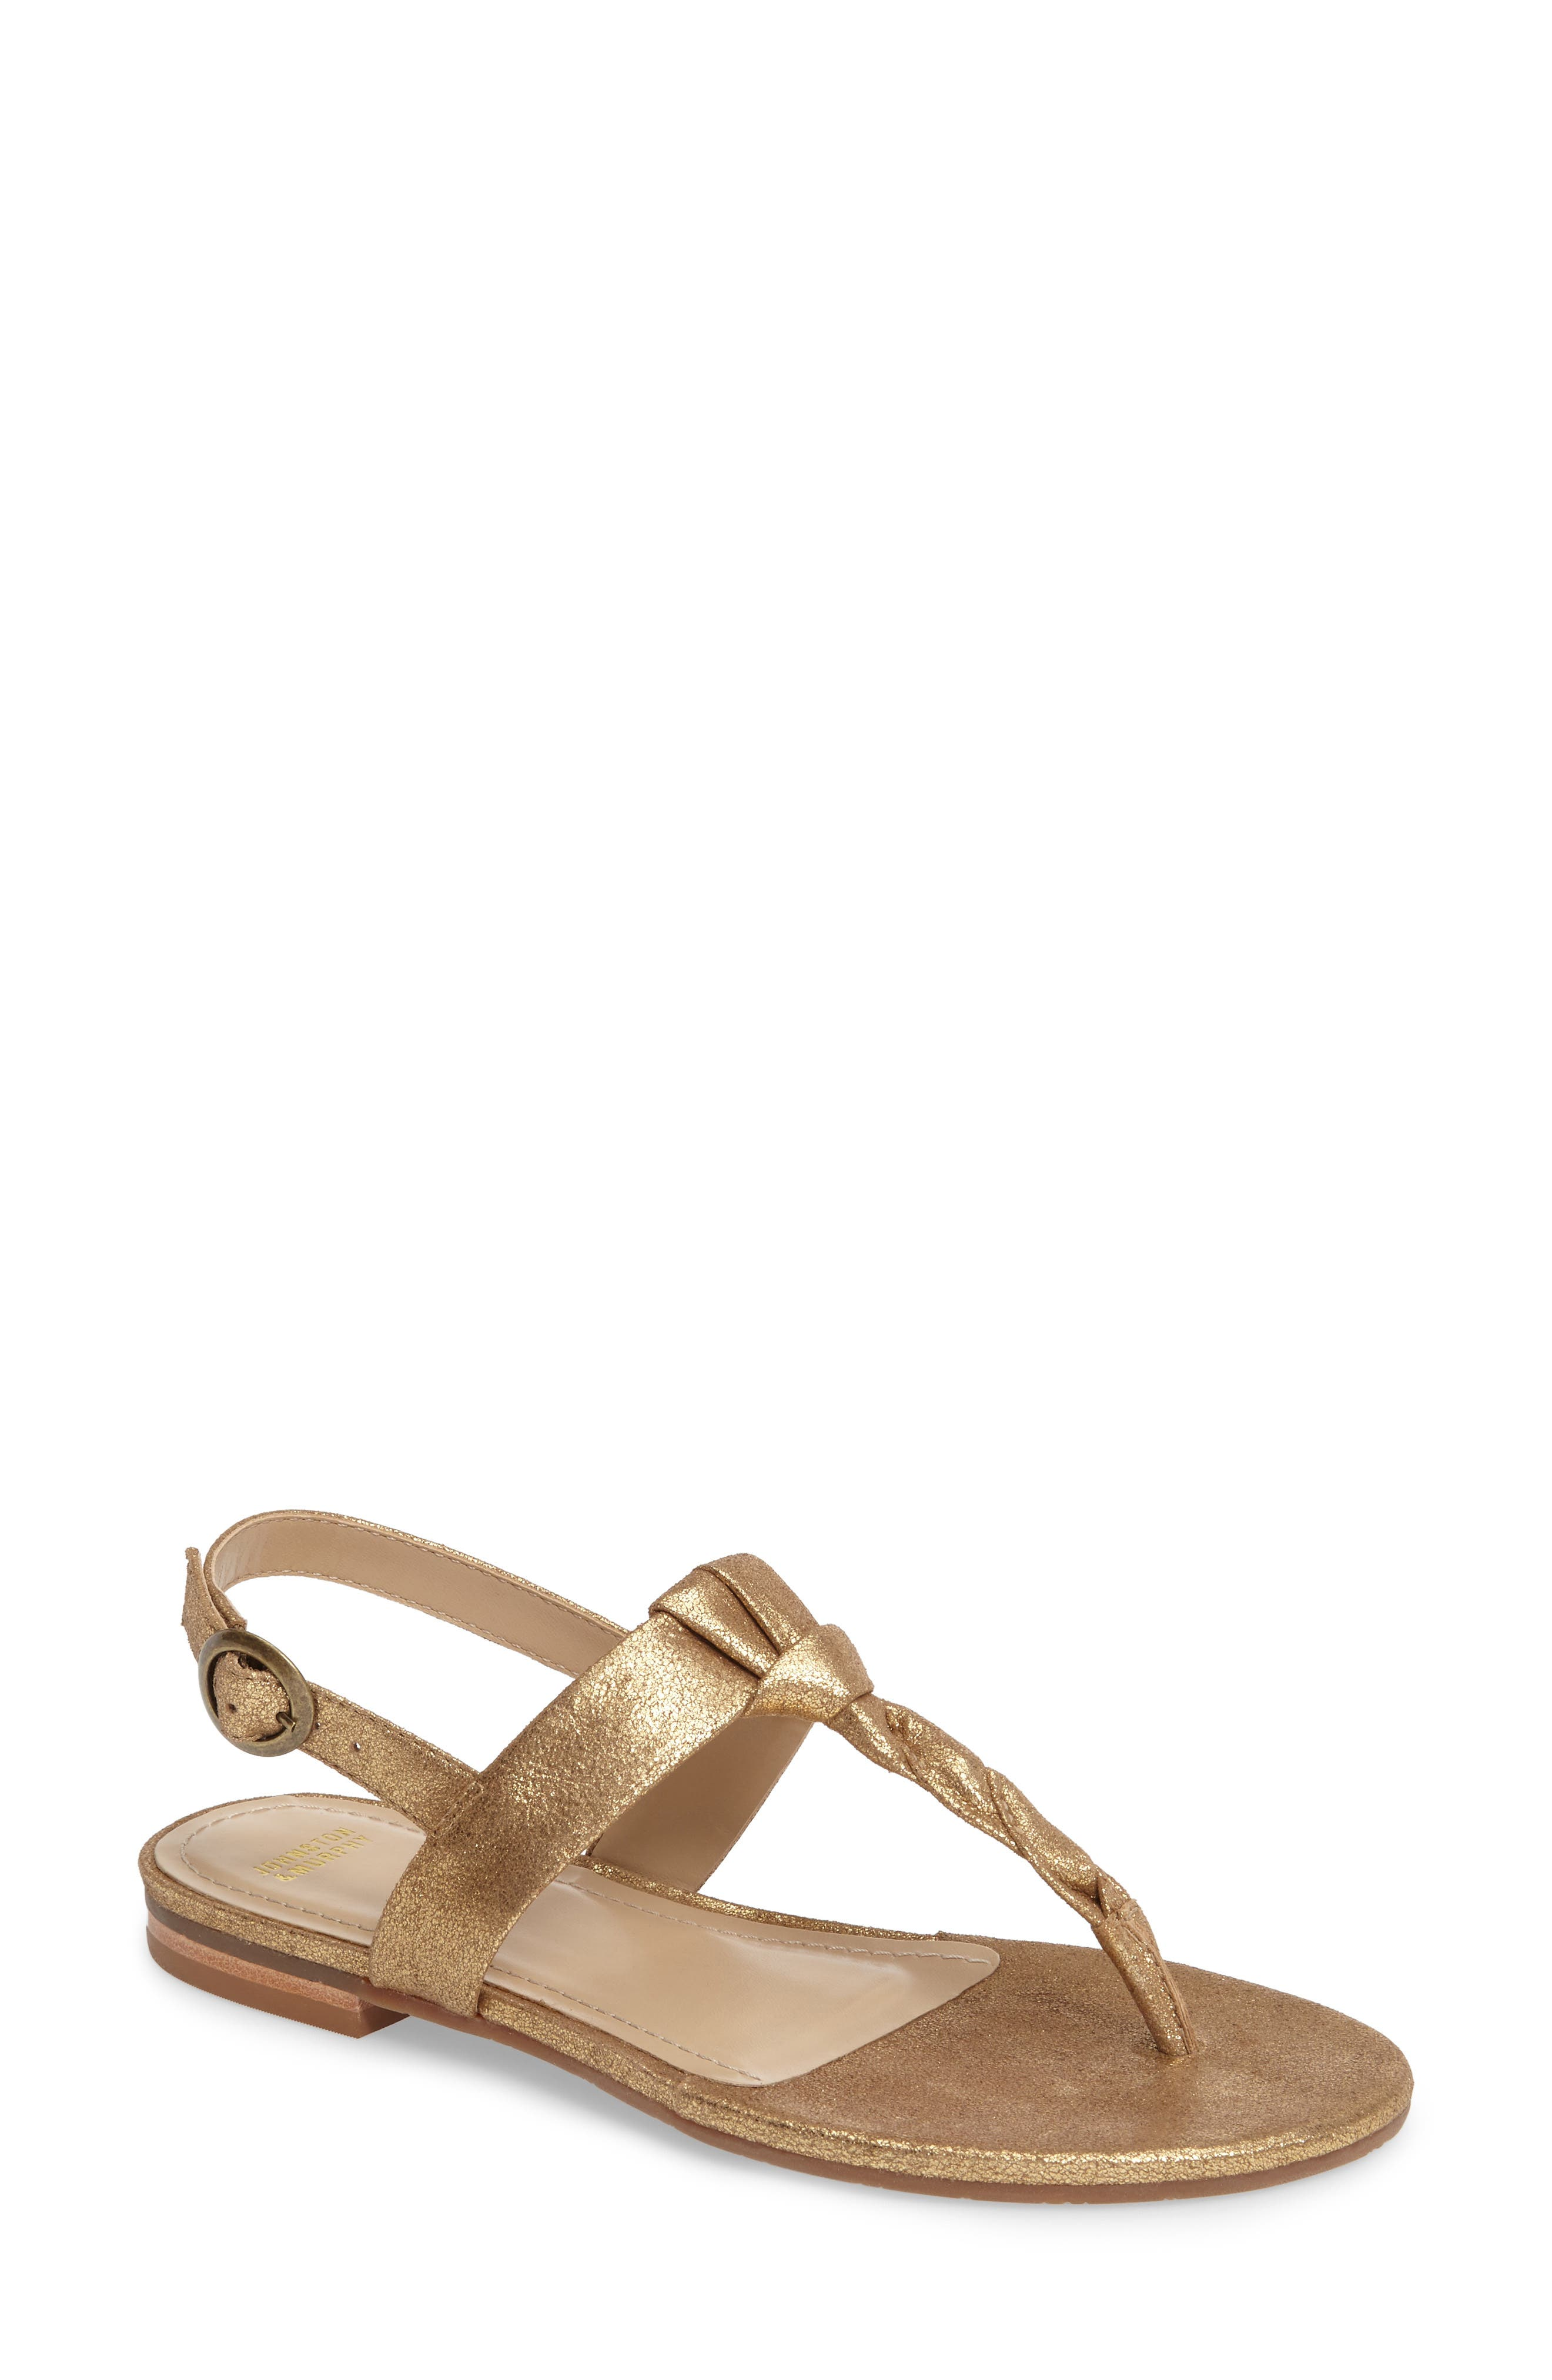 Holly Twisted T-Strap Sandal,                             Main thumbnail 5, color,